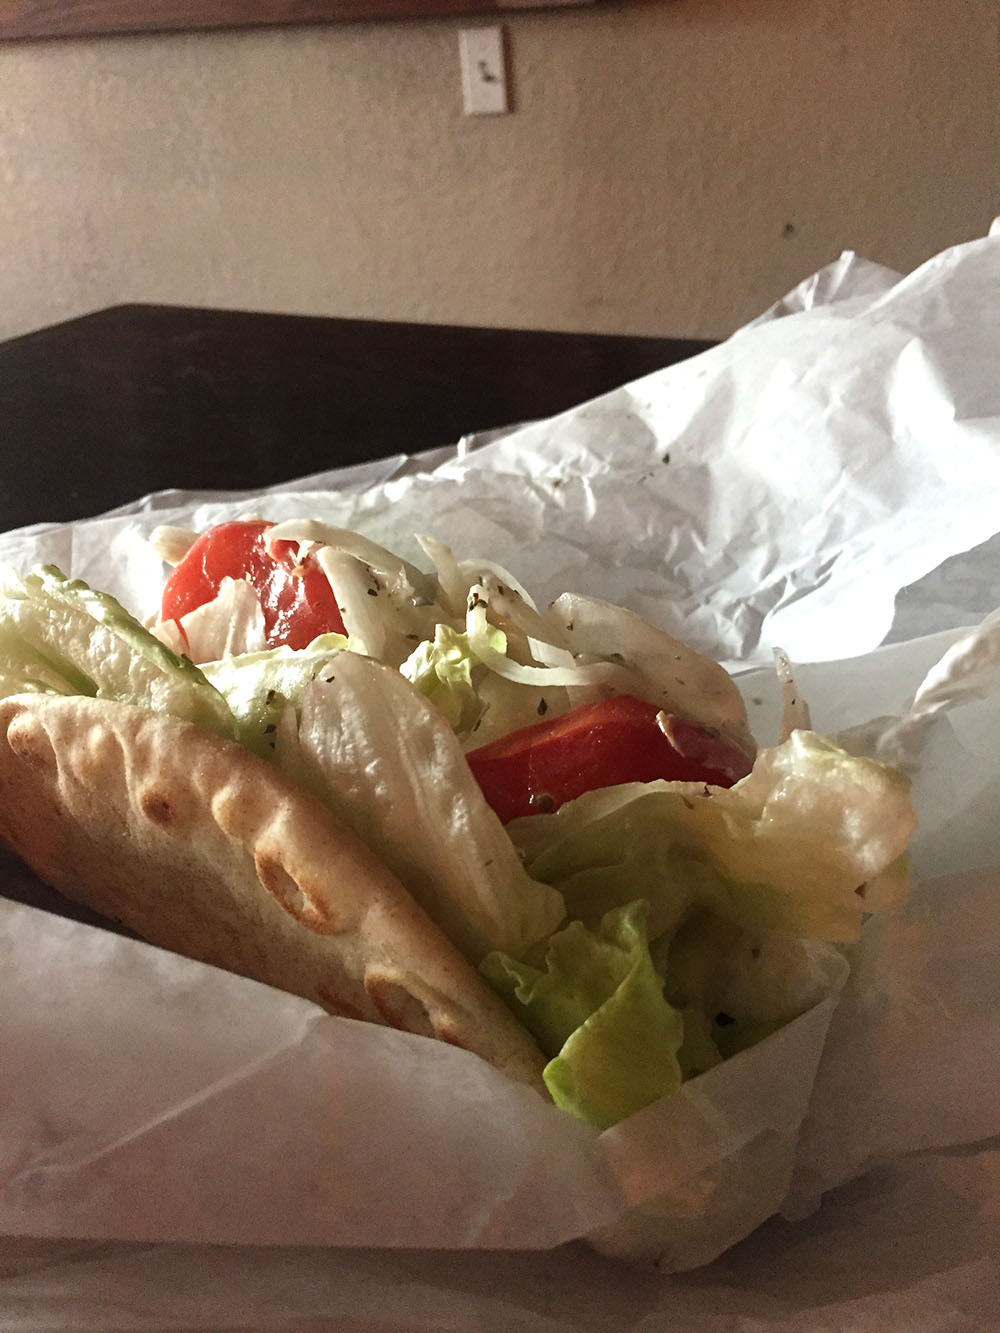 Gyro with salad and tomatoes from Pete's Kitchen in Mason City, Iowa